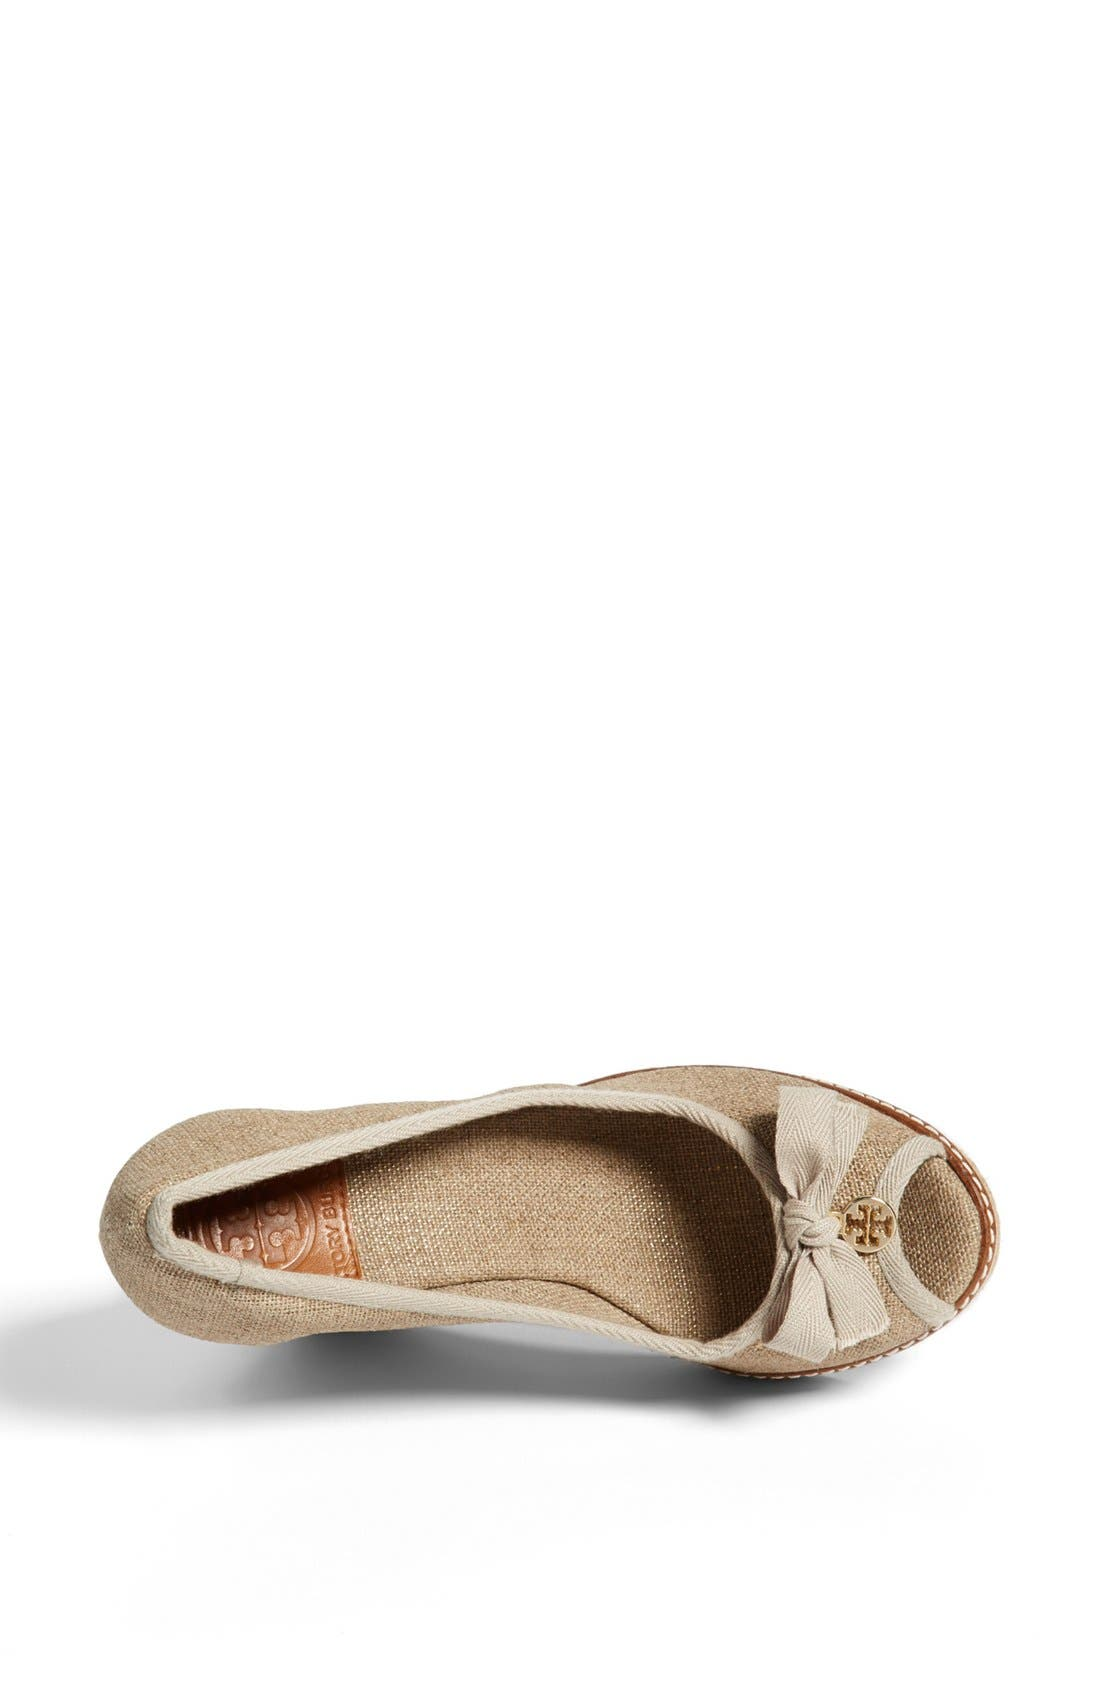 Alternate Image 3  - Tory Burch 'Jackie' Espadrille Wedge